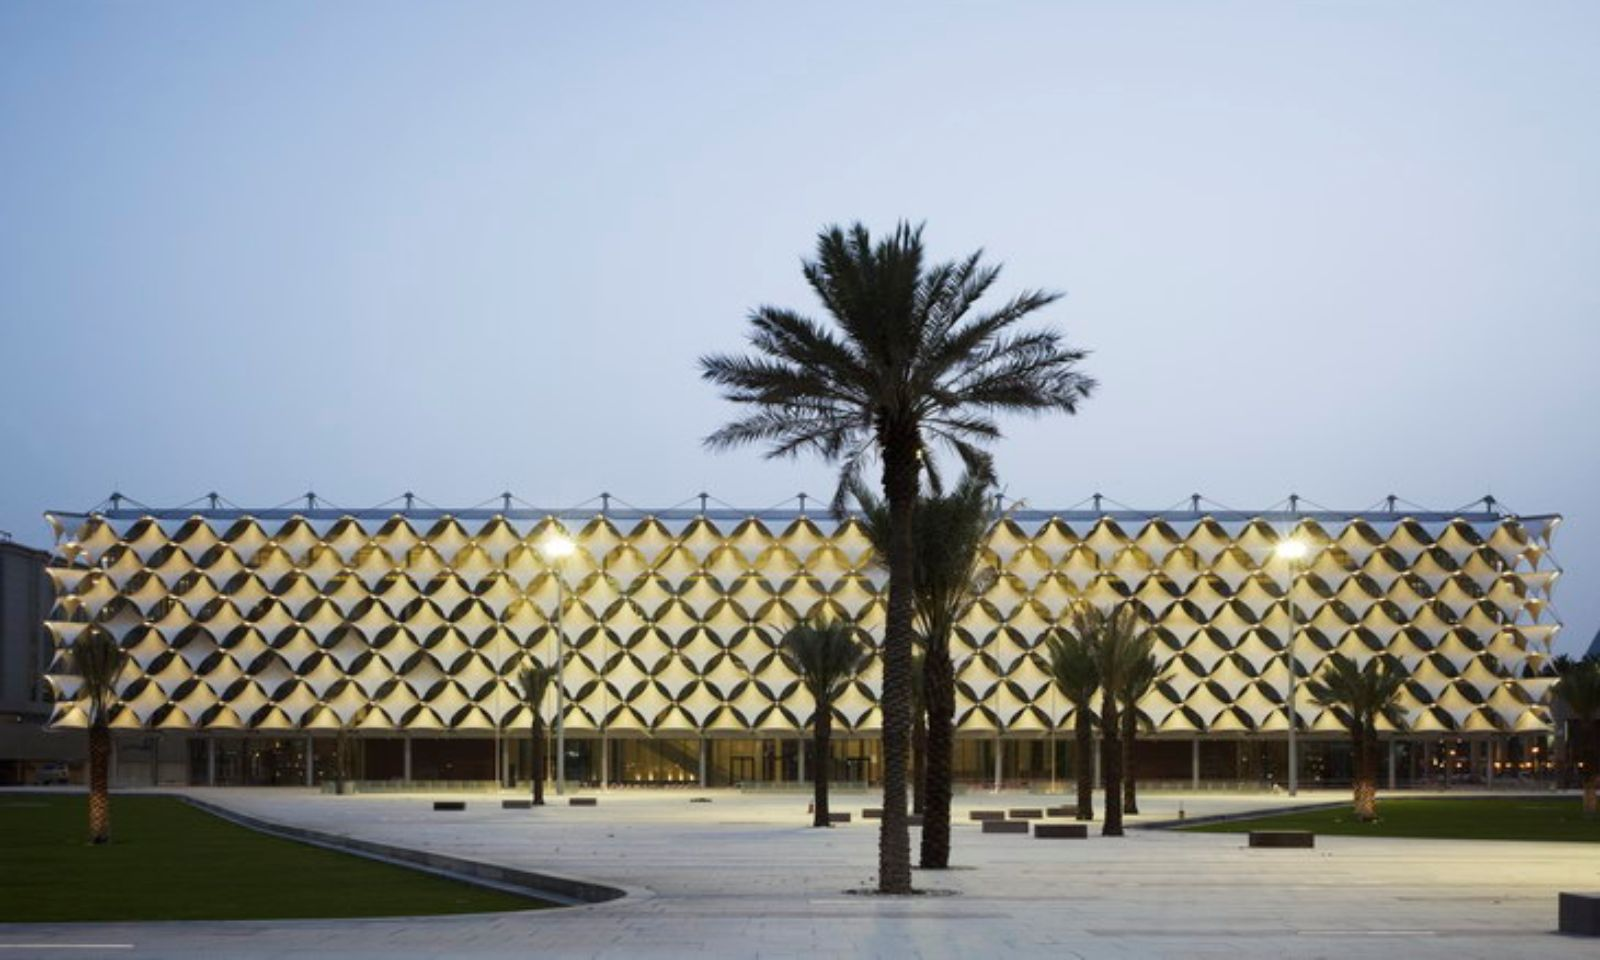 01-King-Fahad-National-Library-by-Gerber-Architekten